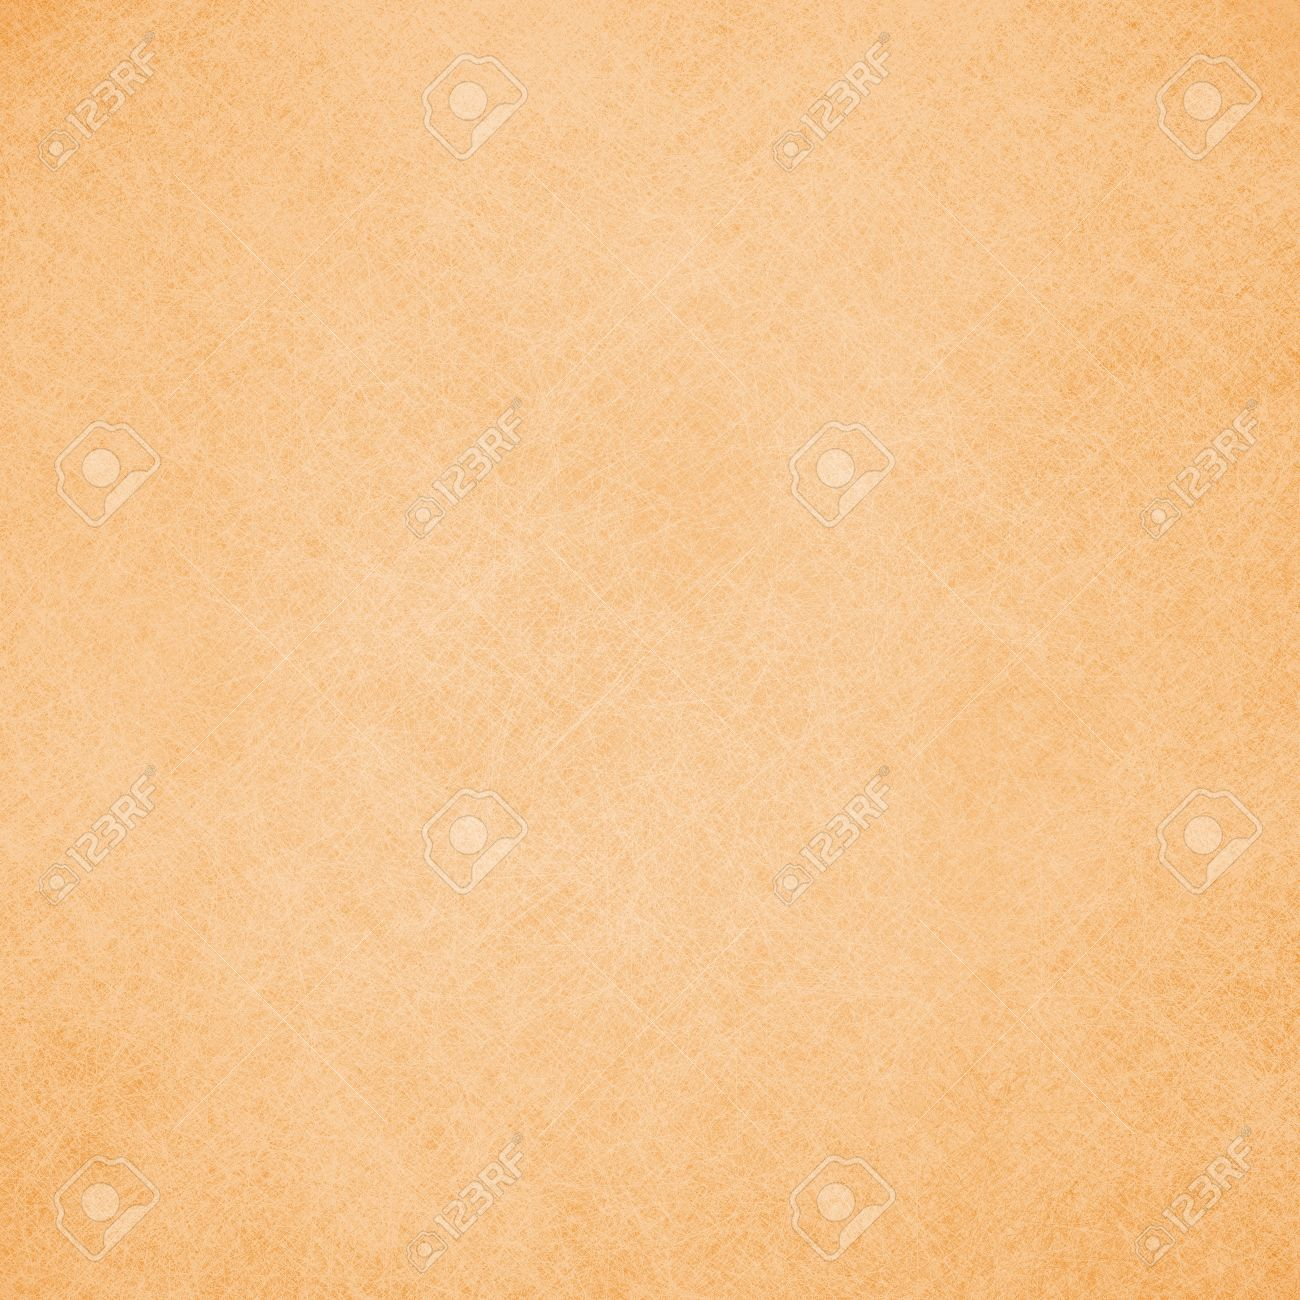 Soft Orange Color Abstract Plain Orange Background Peach Color Soft Faded Vintage